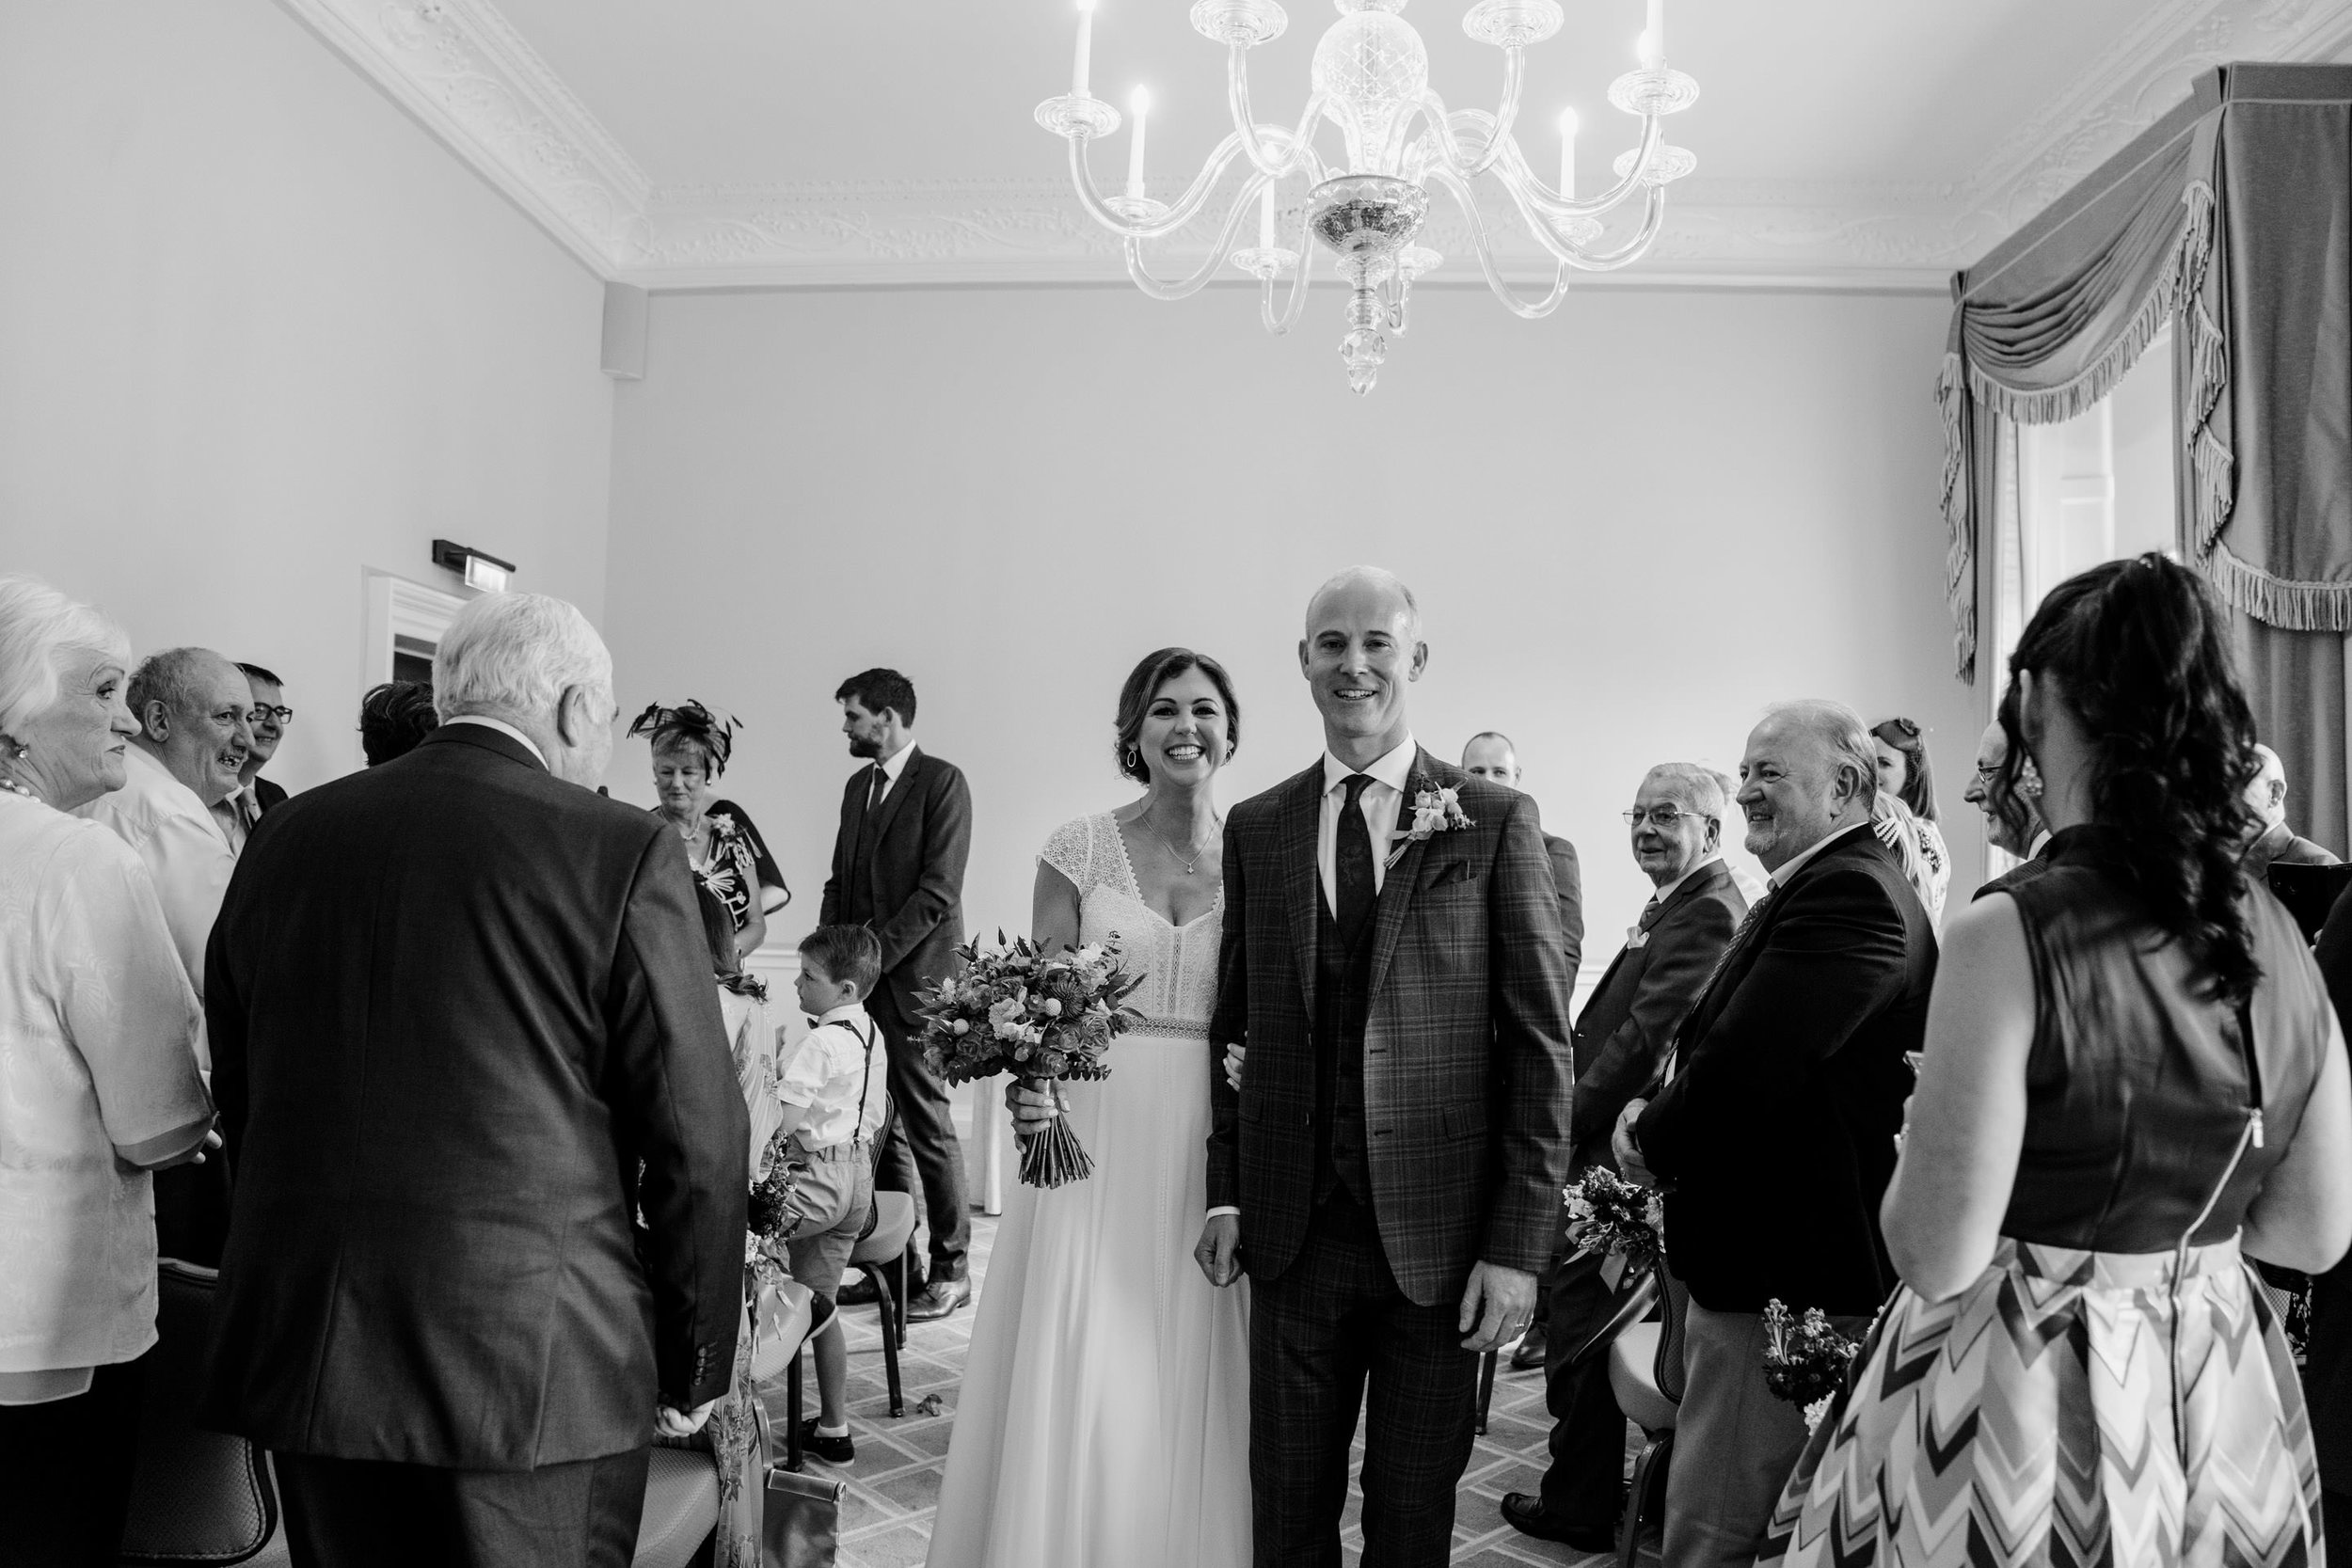 s&r_the_shelbourne_hotel_wedding_photographer_livia_figueiredo_8.jpg